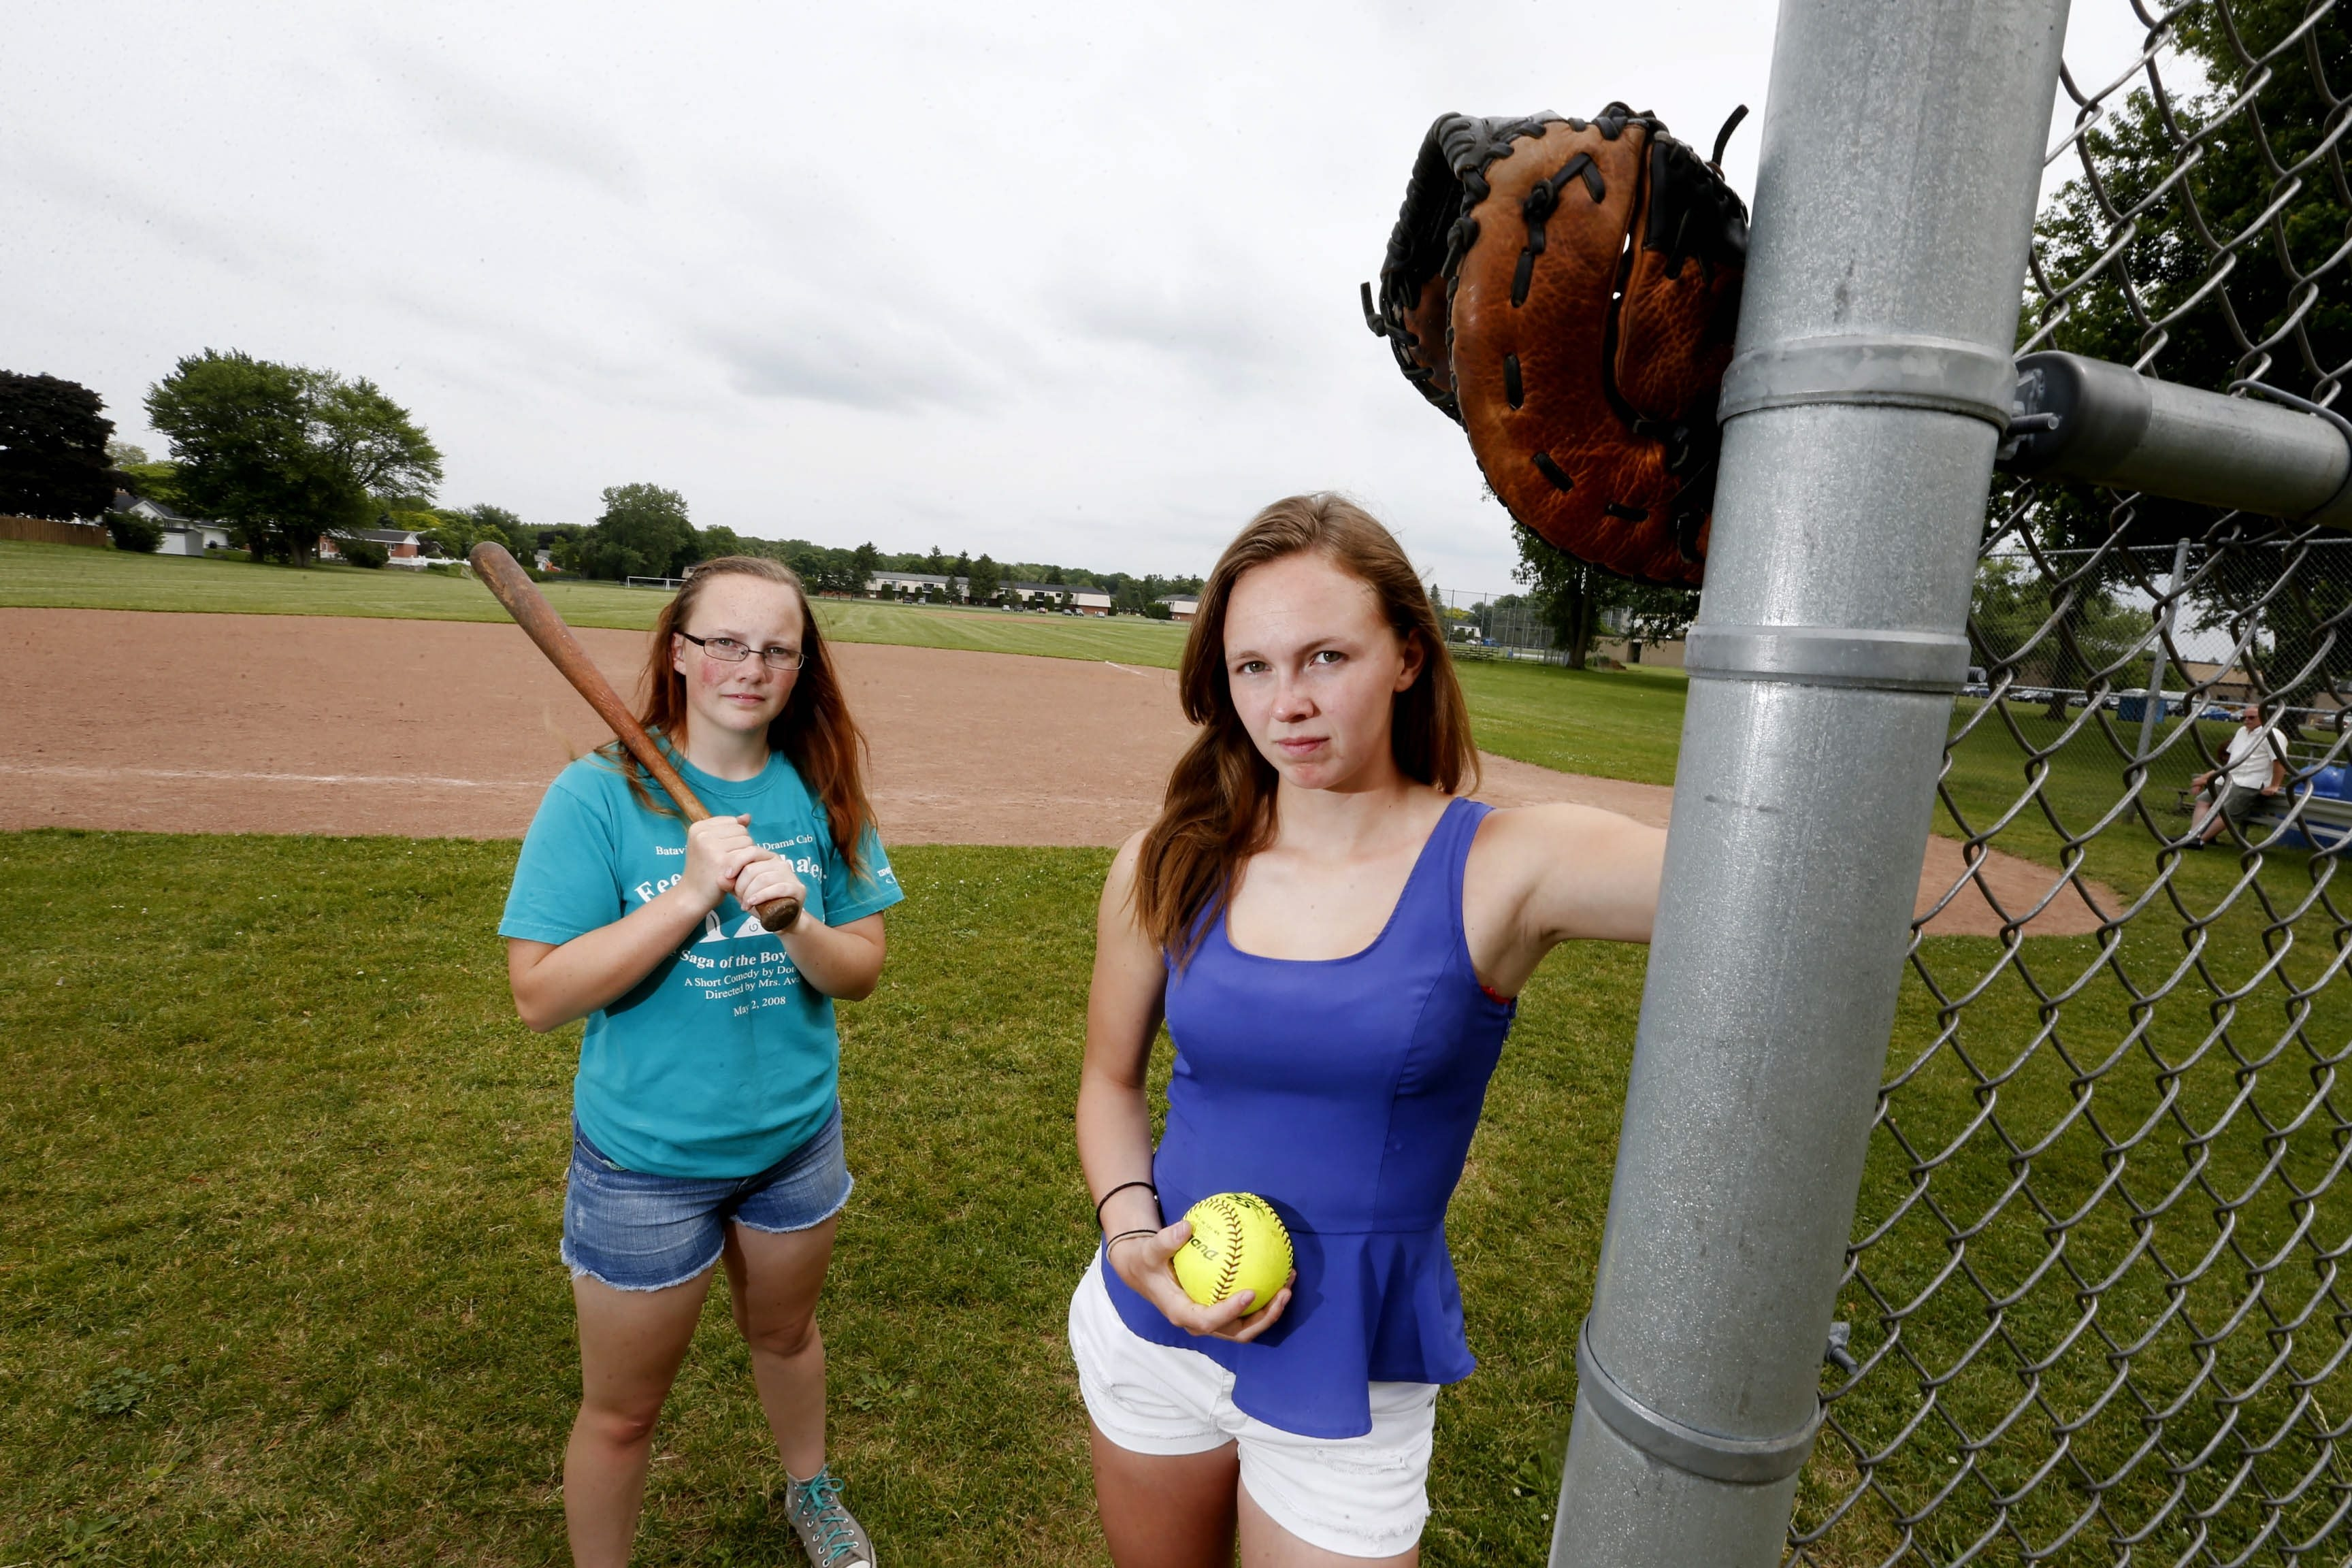 Elizabeth Myers, 18, right, and her sister, Rebecca, 15, visit their softball field. The Myerses  and a third  Batavia varsity softball player sued the school district in federal court and won the right to have access to the same quality athletic facilities as boys have.